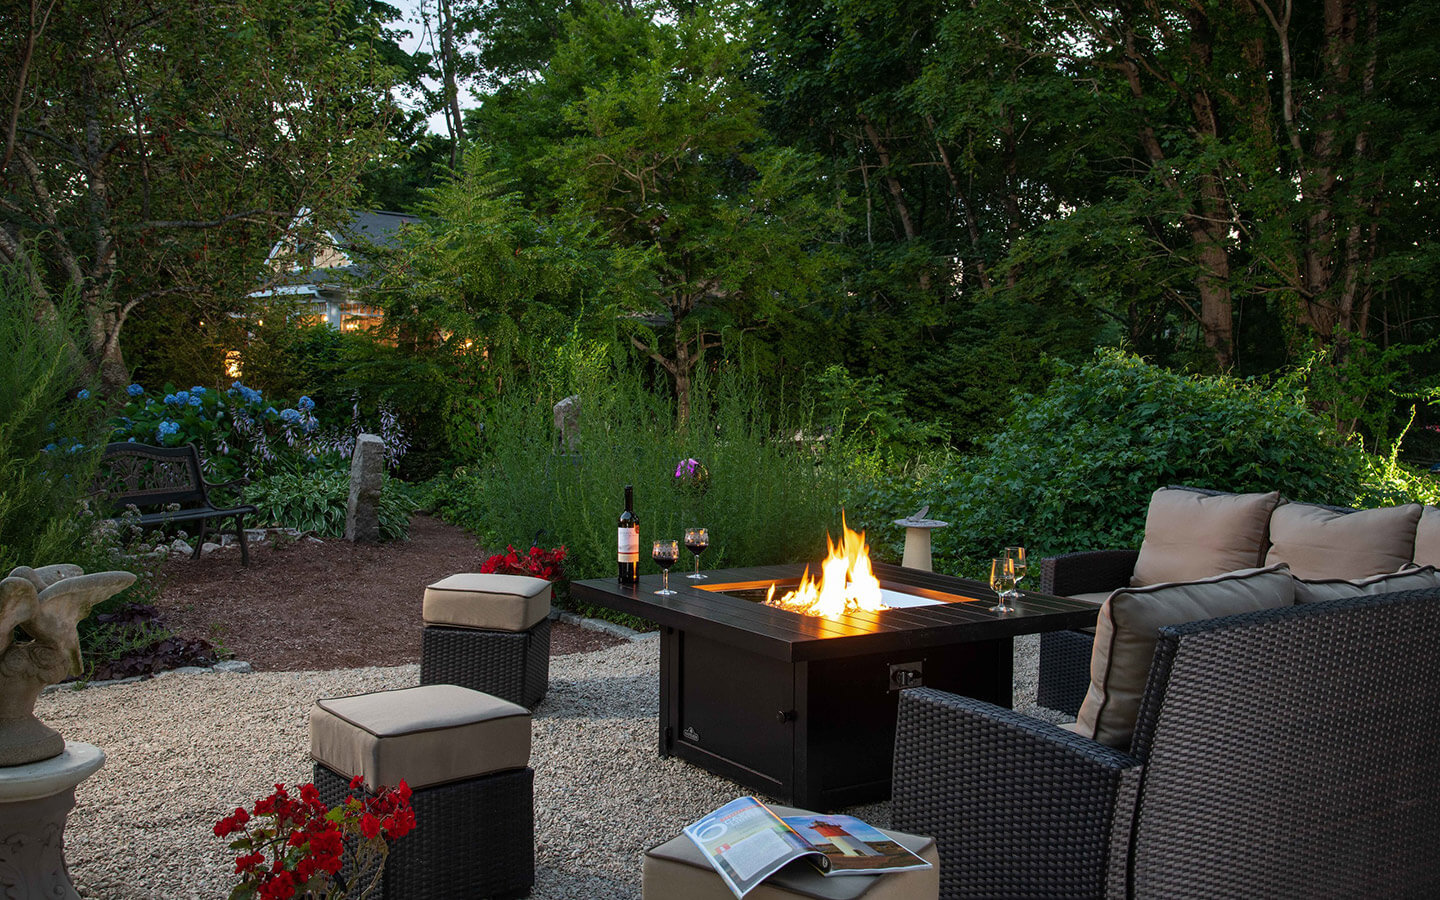 Cozy fire and seating outside at our B&B in Falmouth, MA